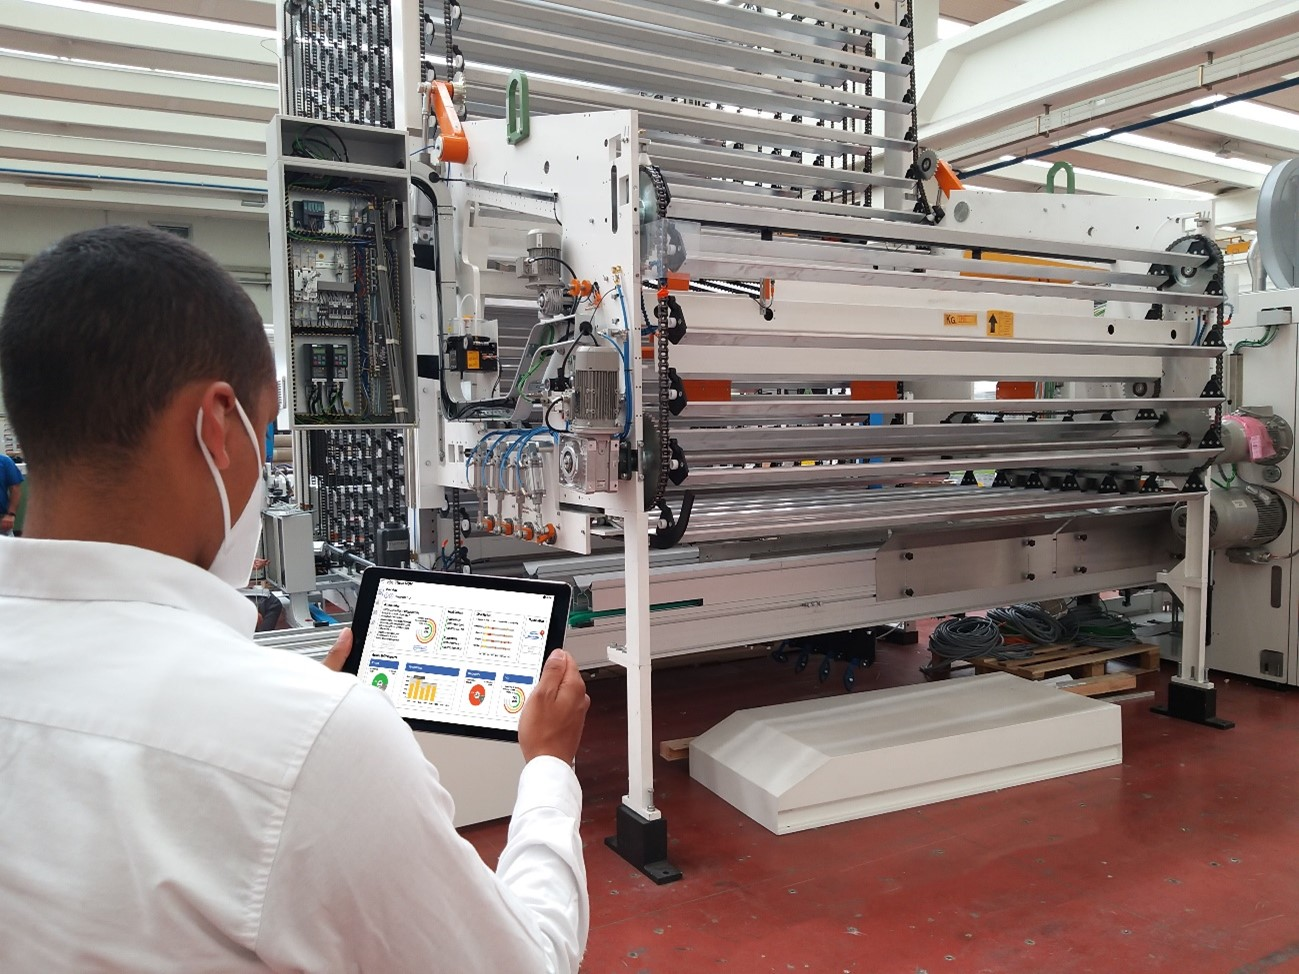 , Körber presents Manufacturing Operations Management solution developed specifically for tissue converters